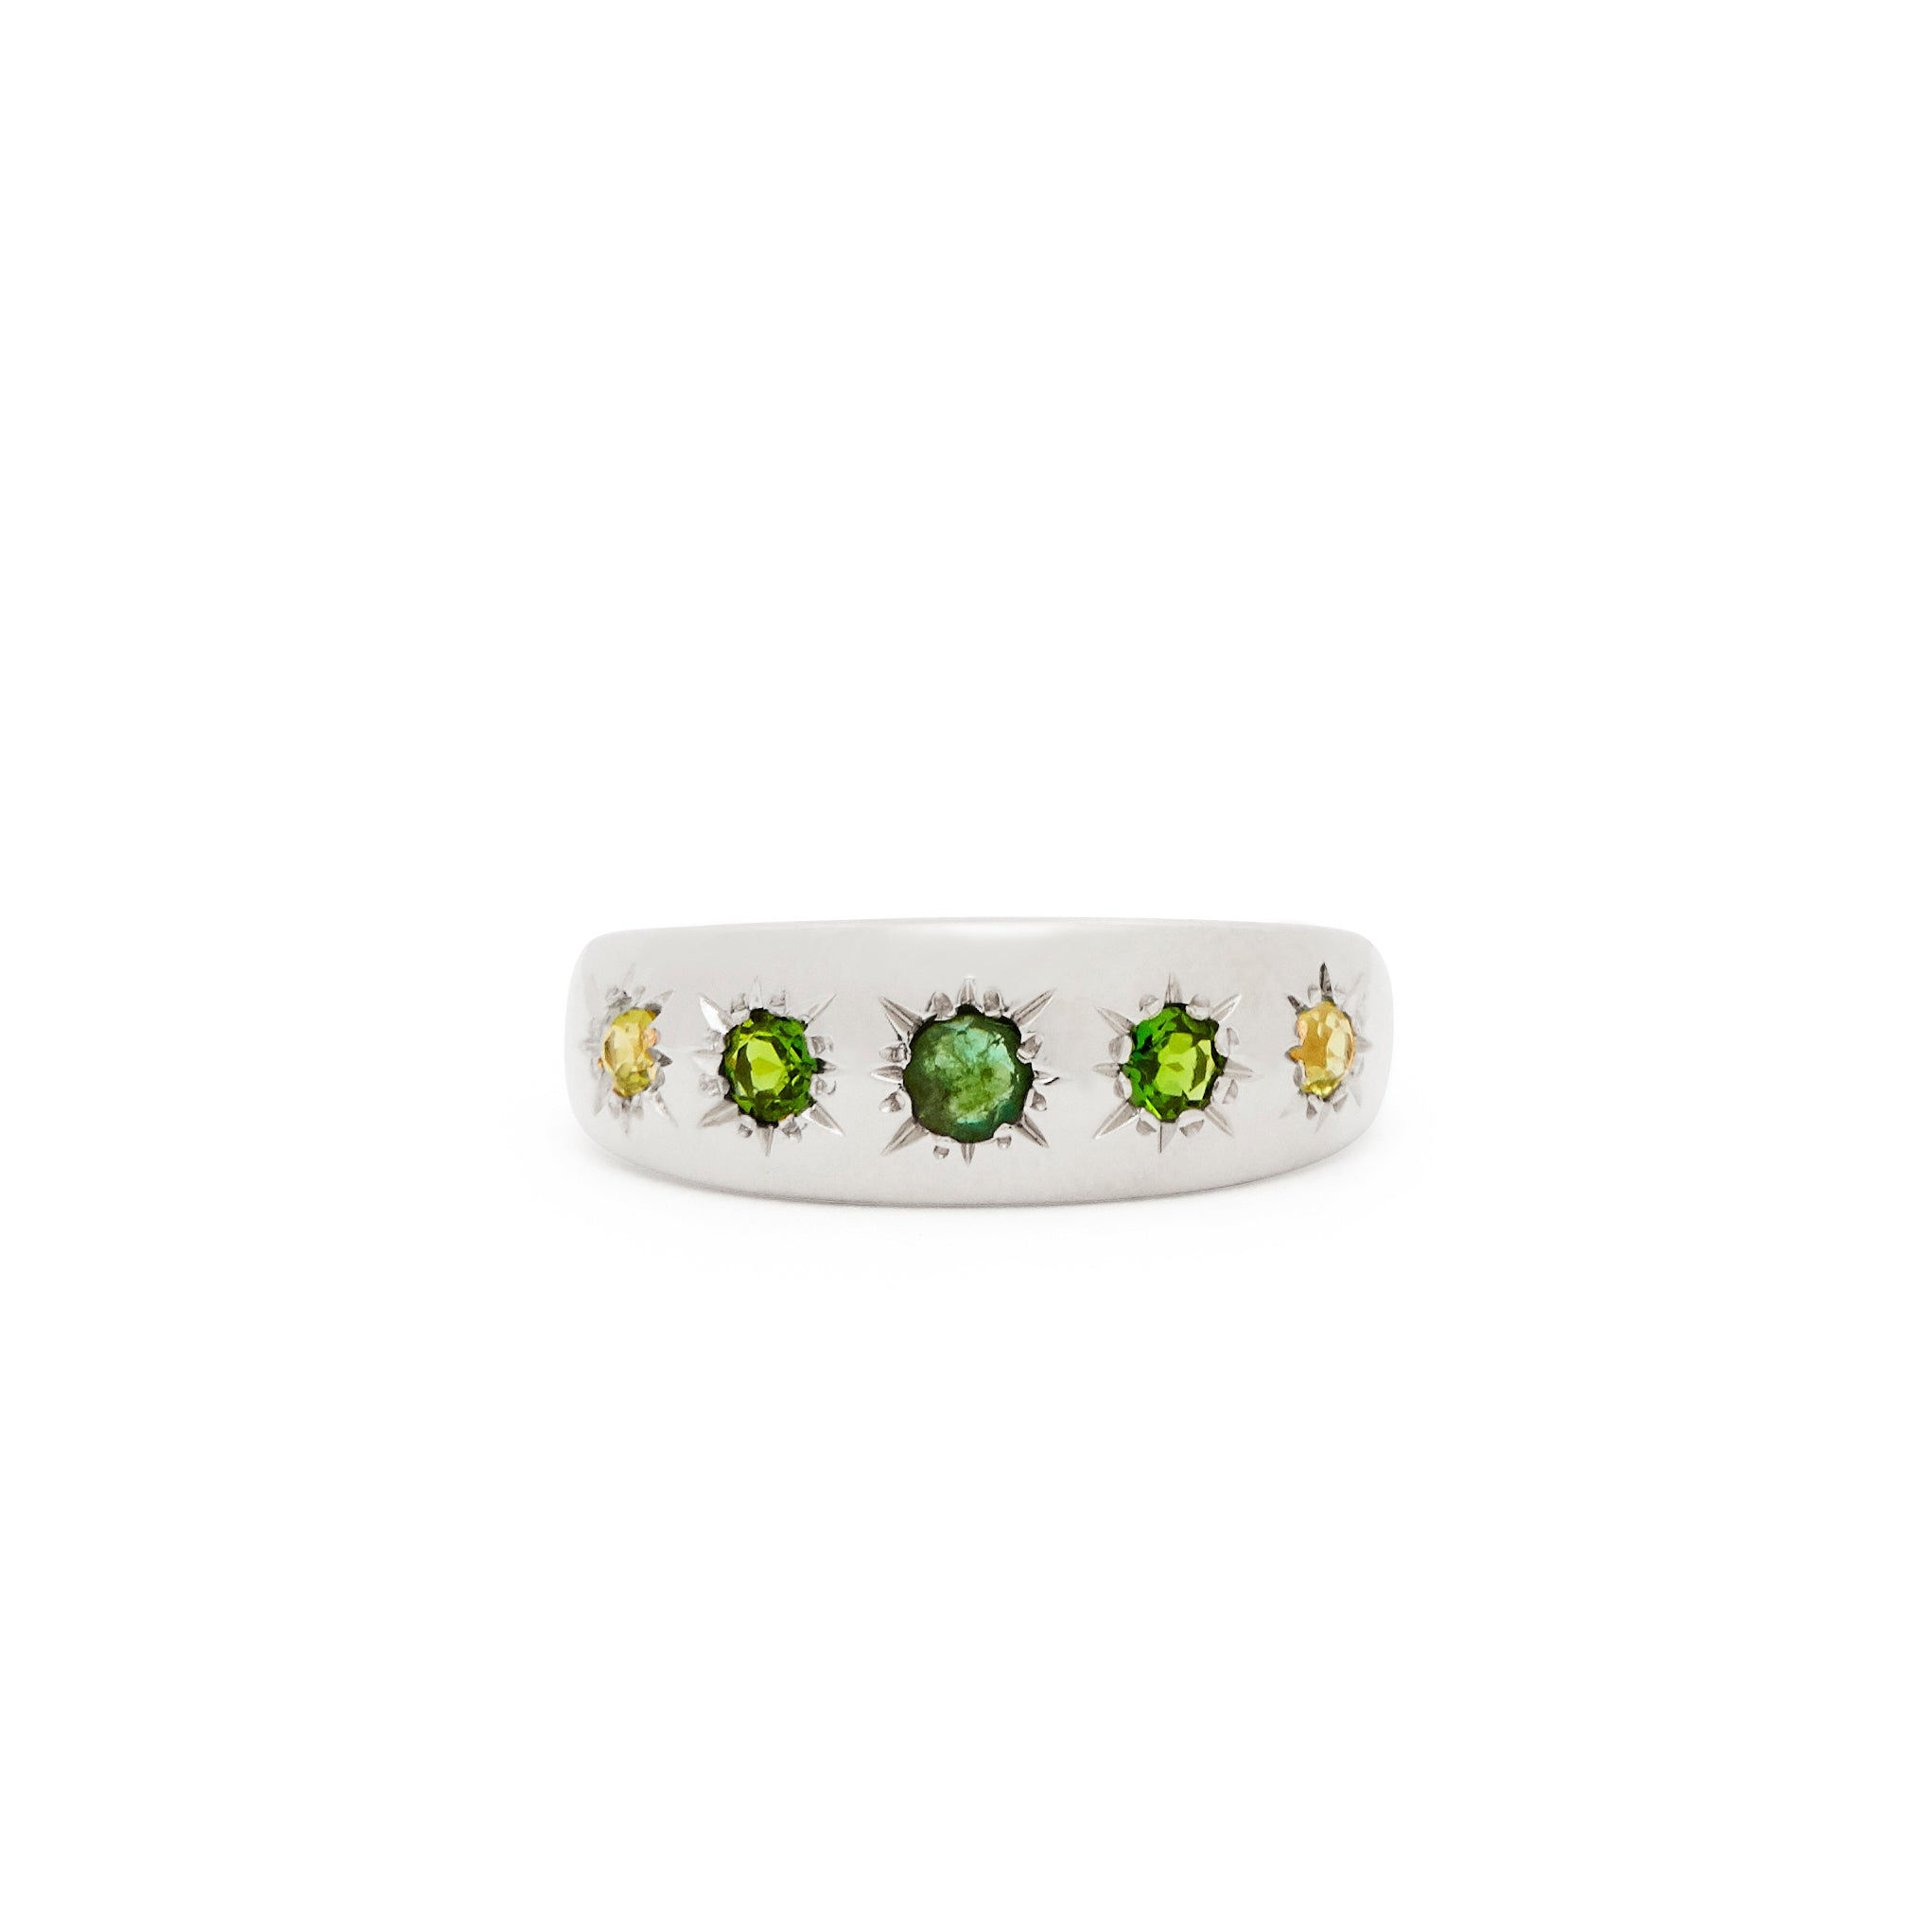 The F&B Green Starburst Ring